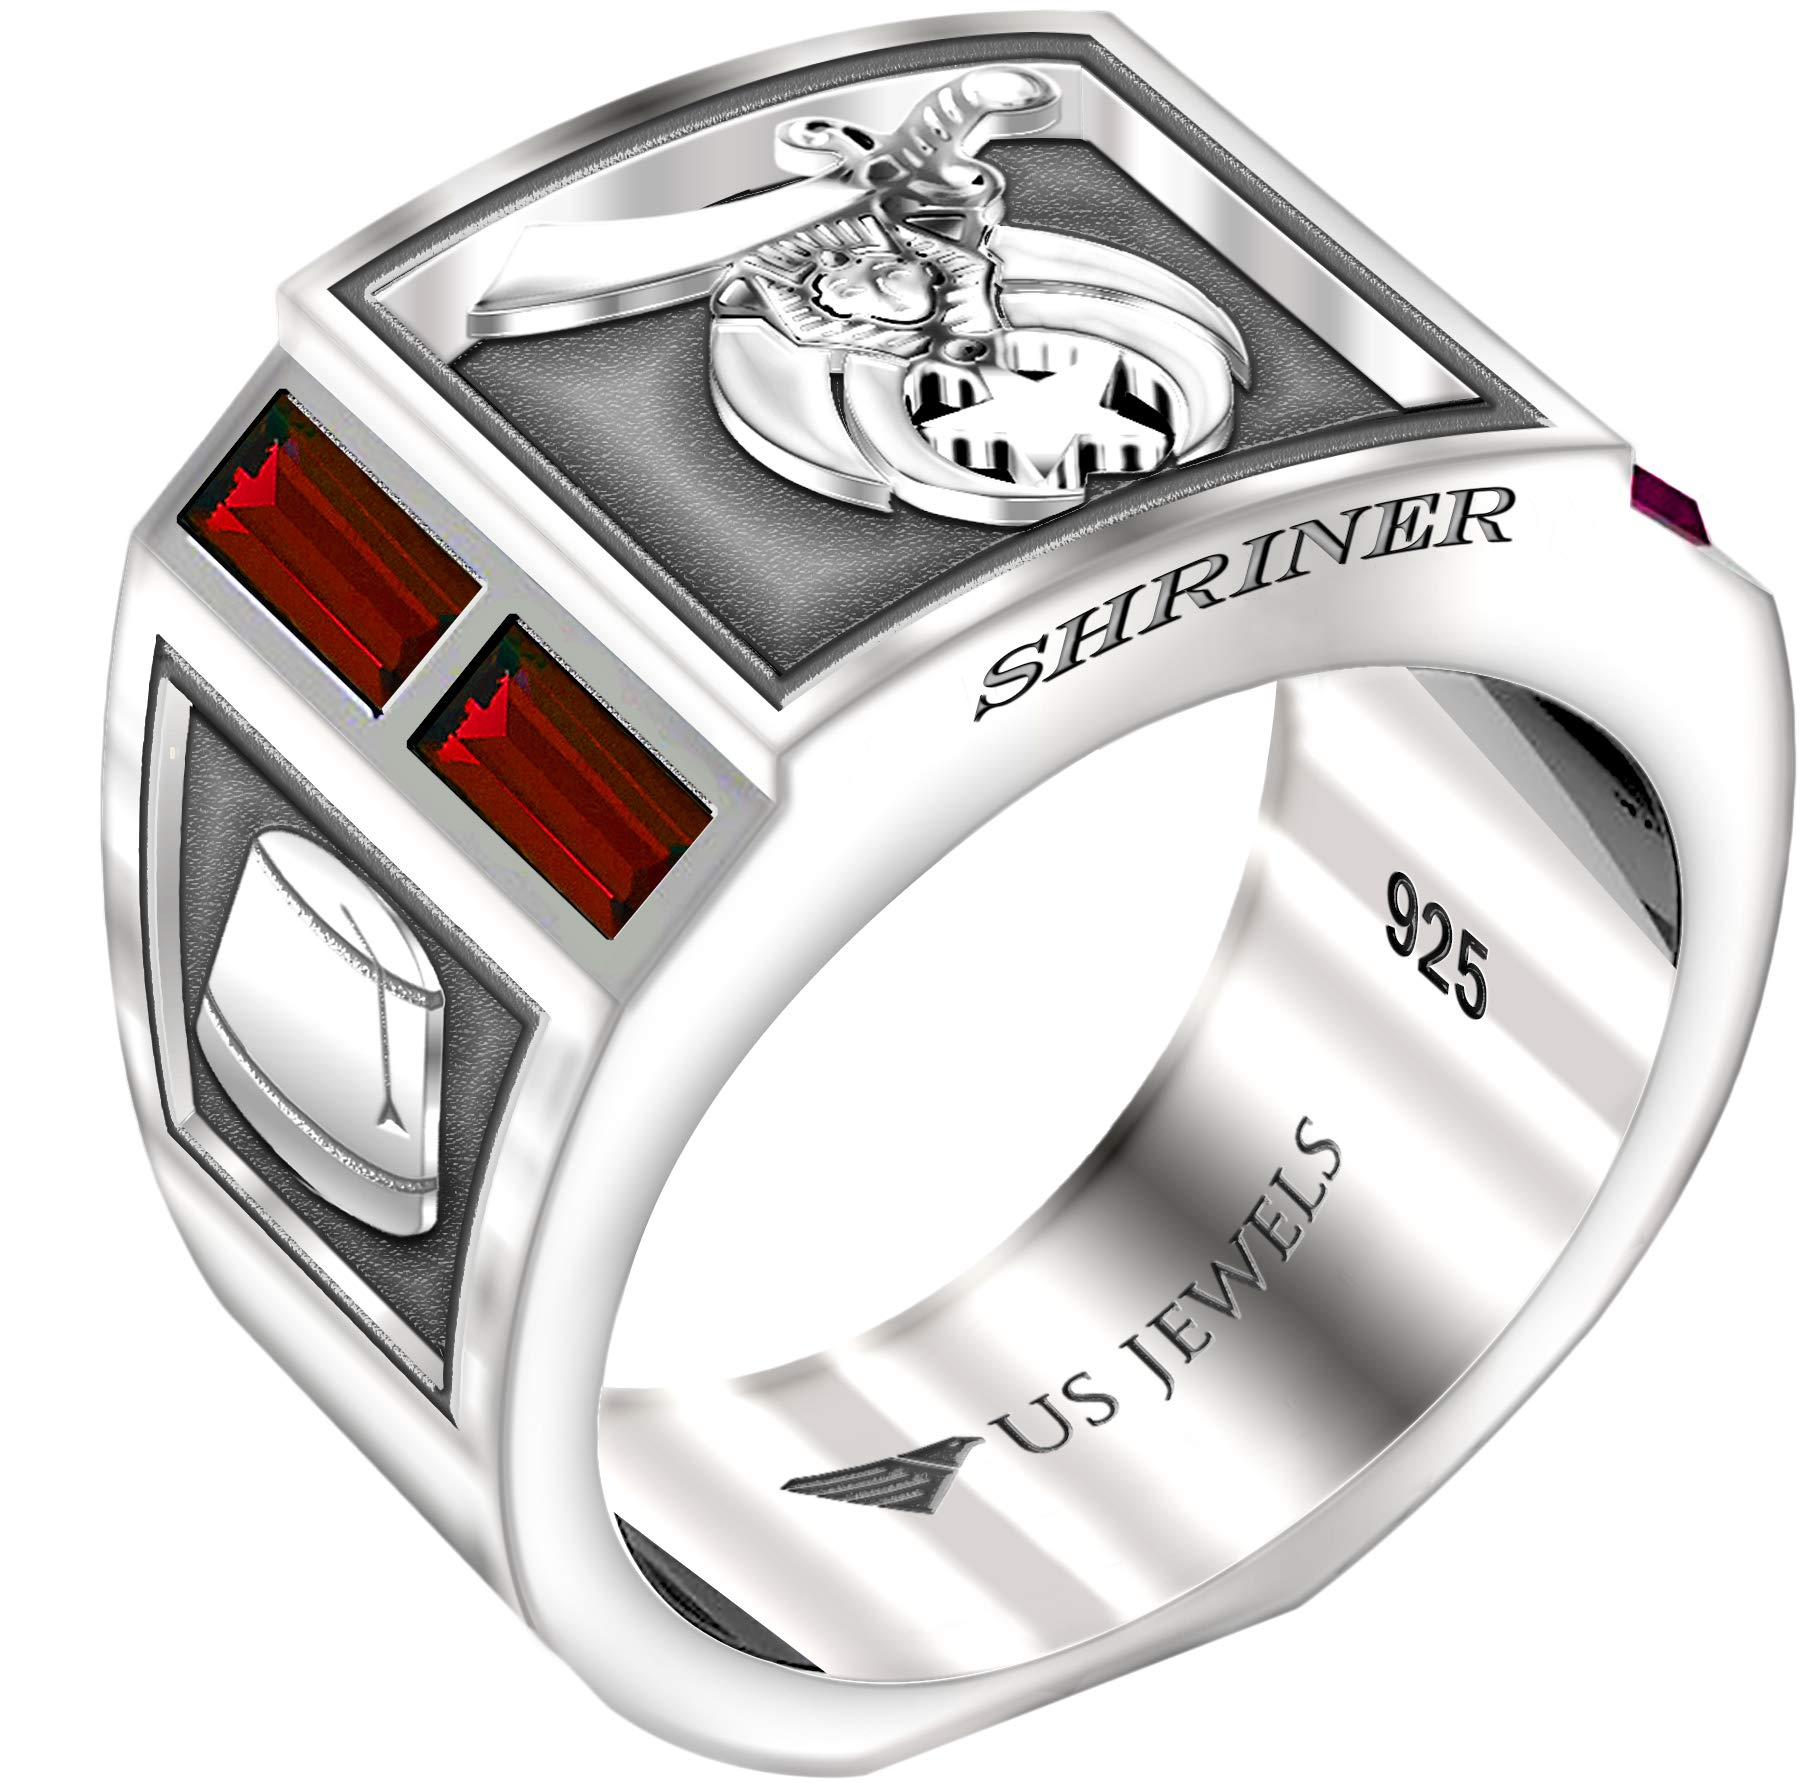 US Jewels And Gems Men's Shriner 0.925 Sterling Silver Simulated Ruby Freemason Masonic Ring, Size 9.5